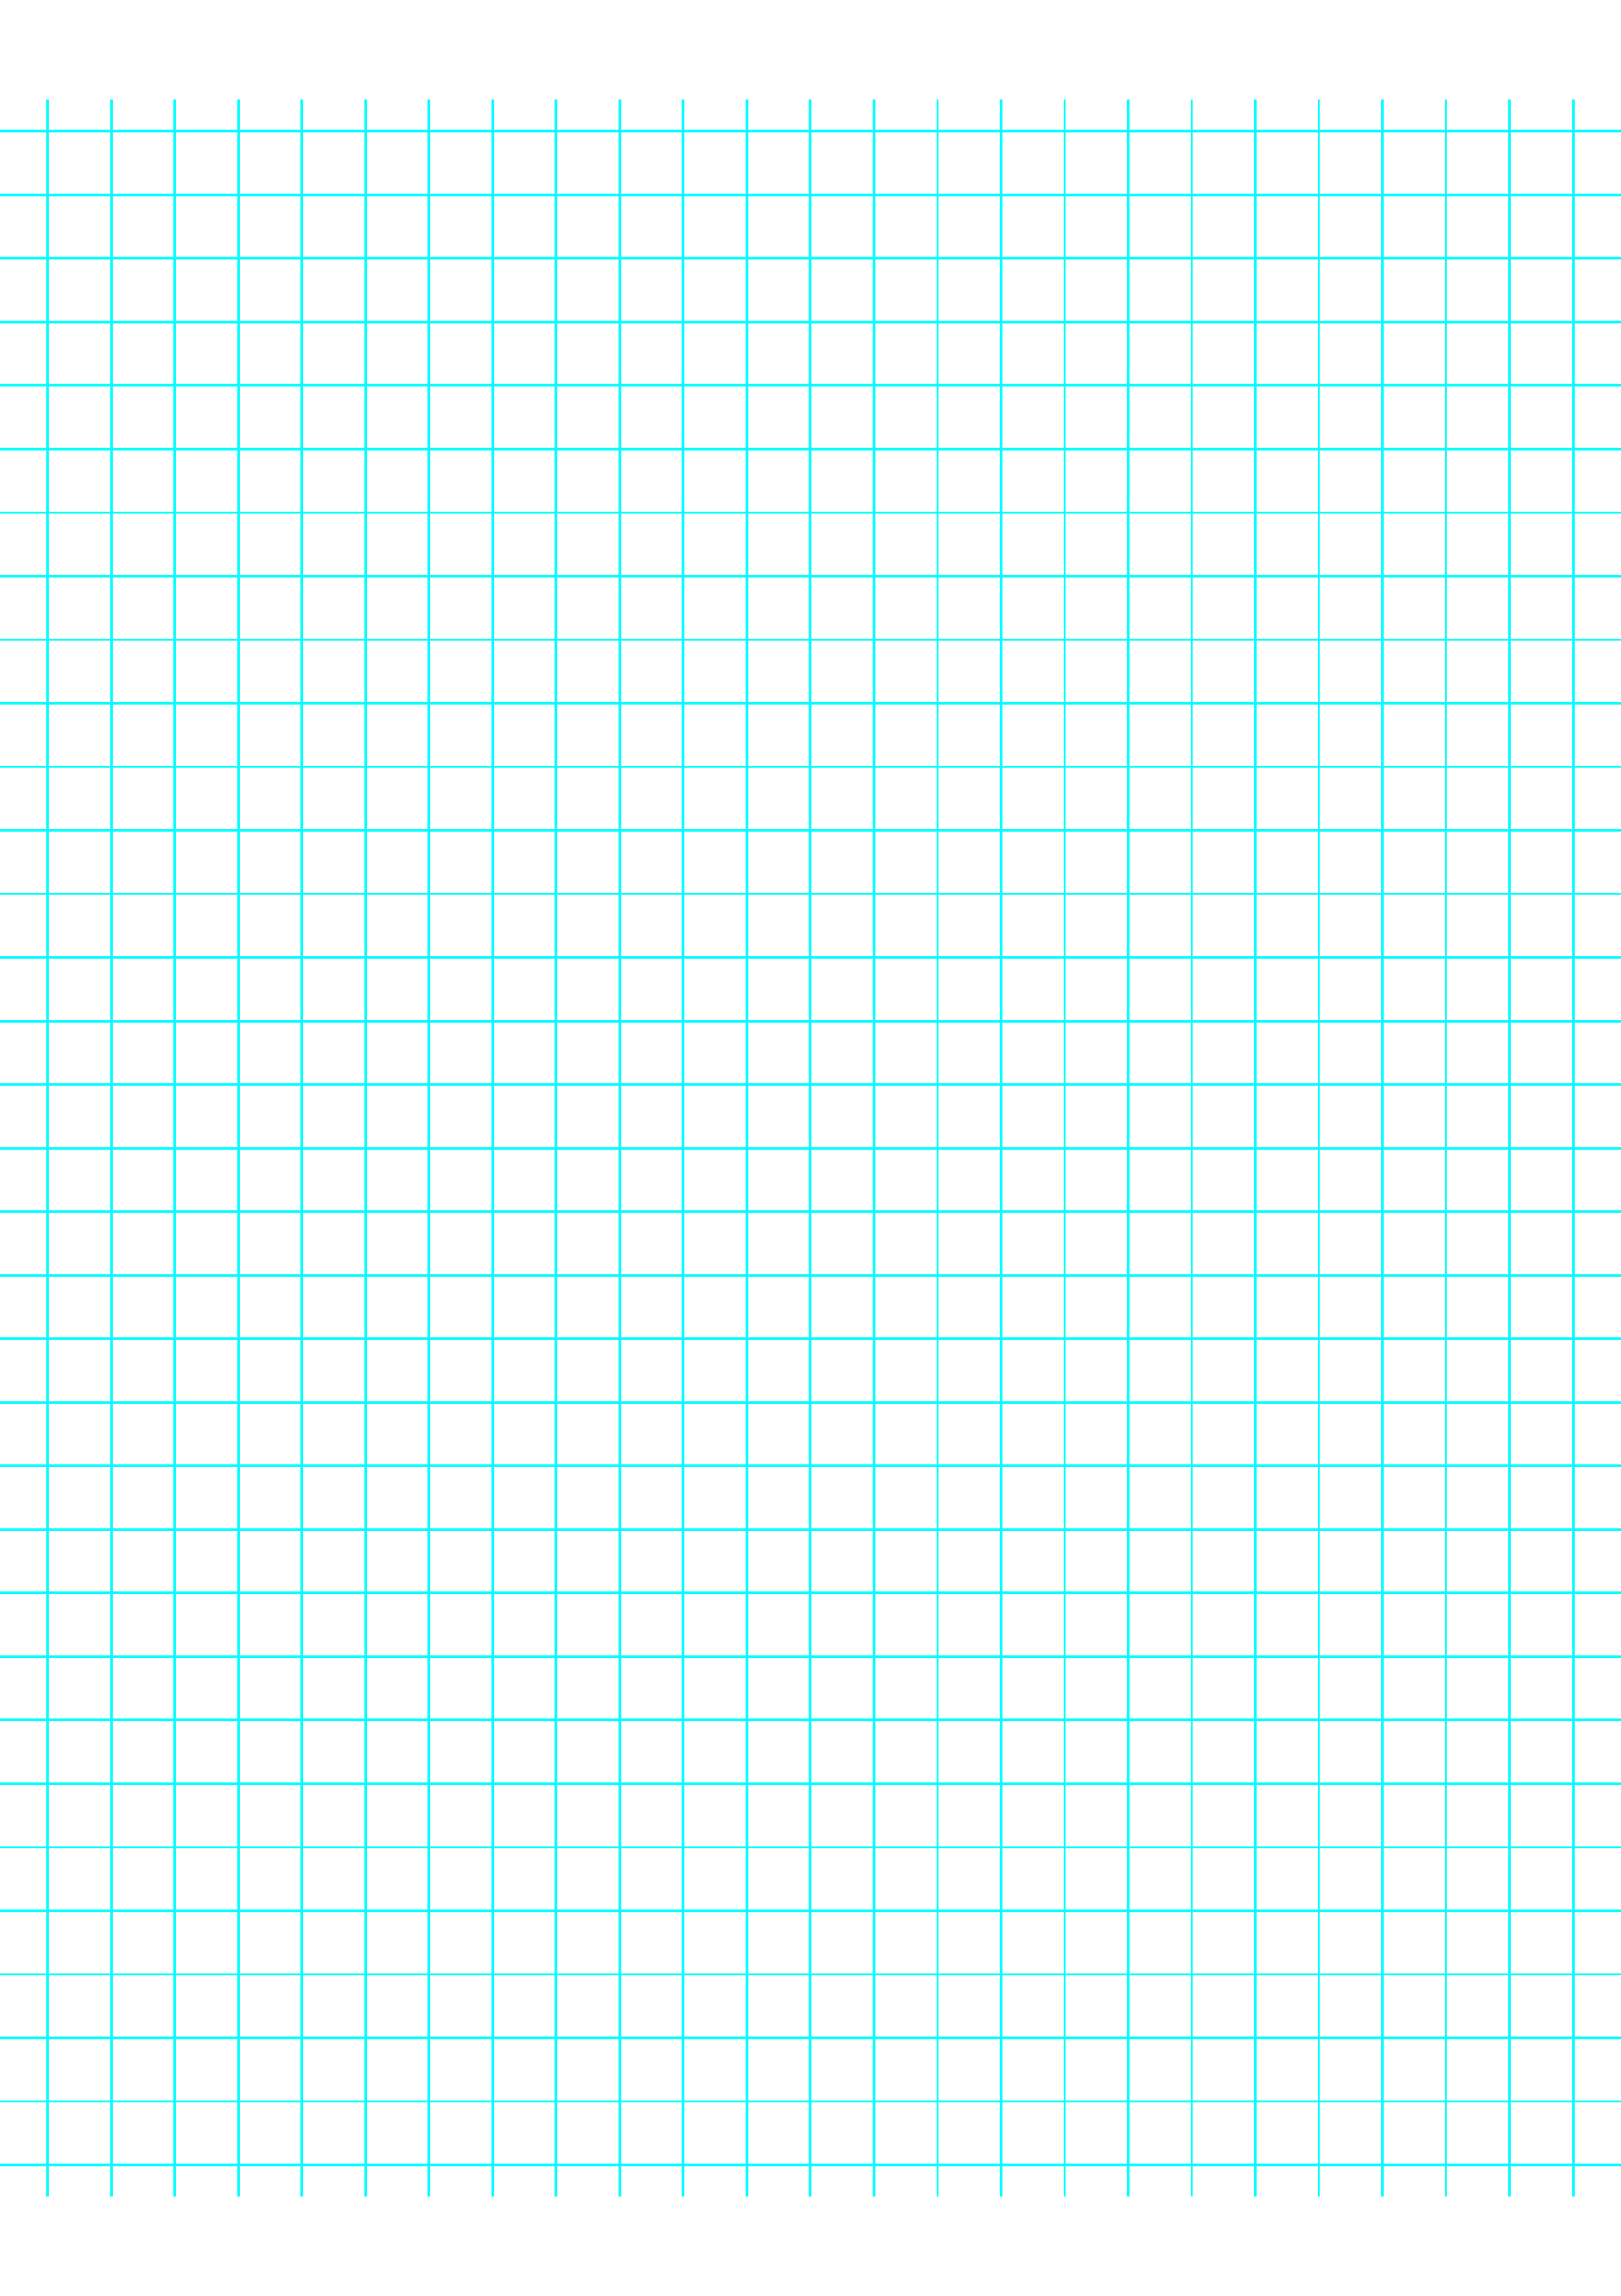 3 Lines Per Inch Graph Paper On Letter Sized Paper Free